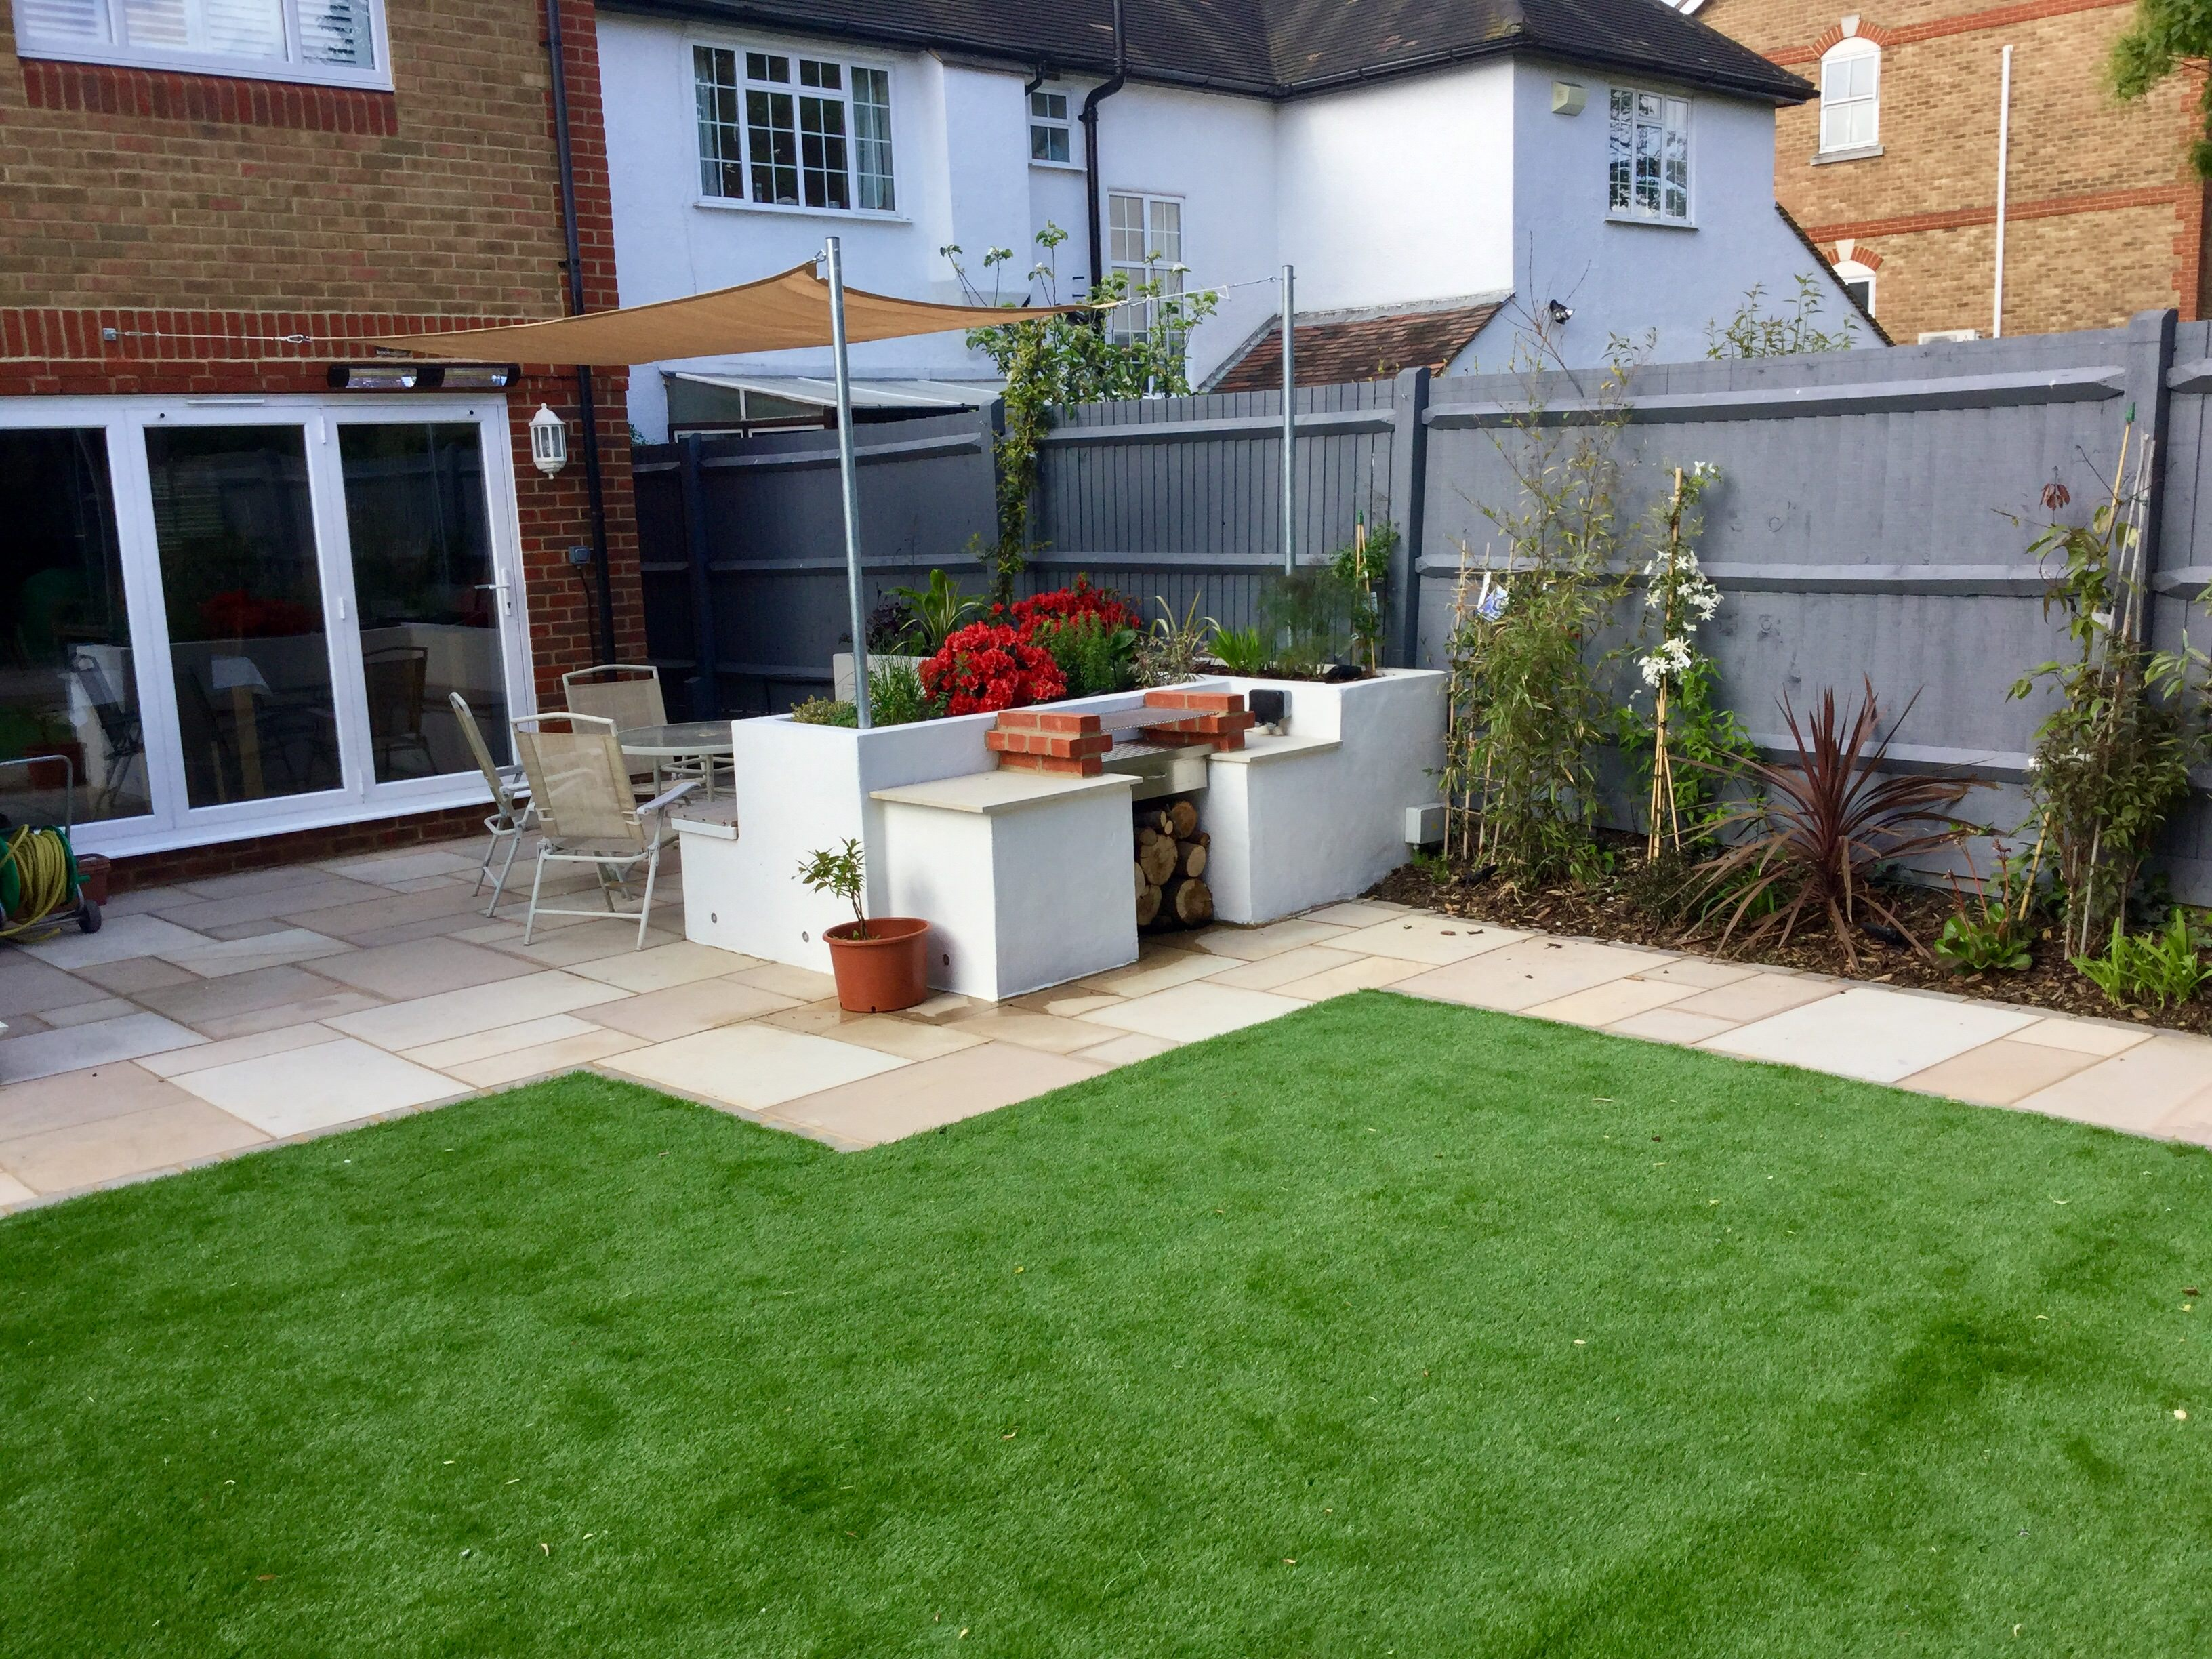 Patio designs for small gardens on Modern Backyard Patio Ideas  id=66960